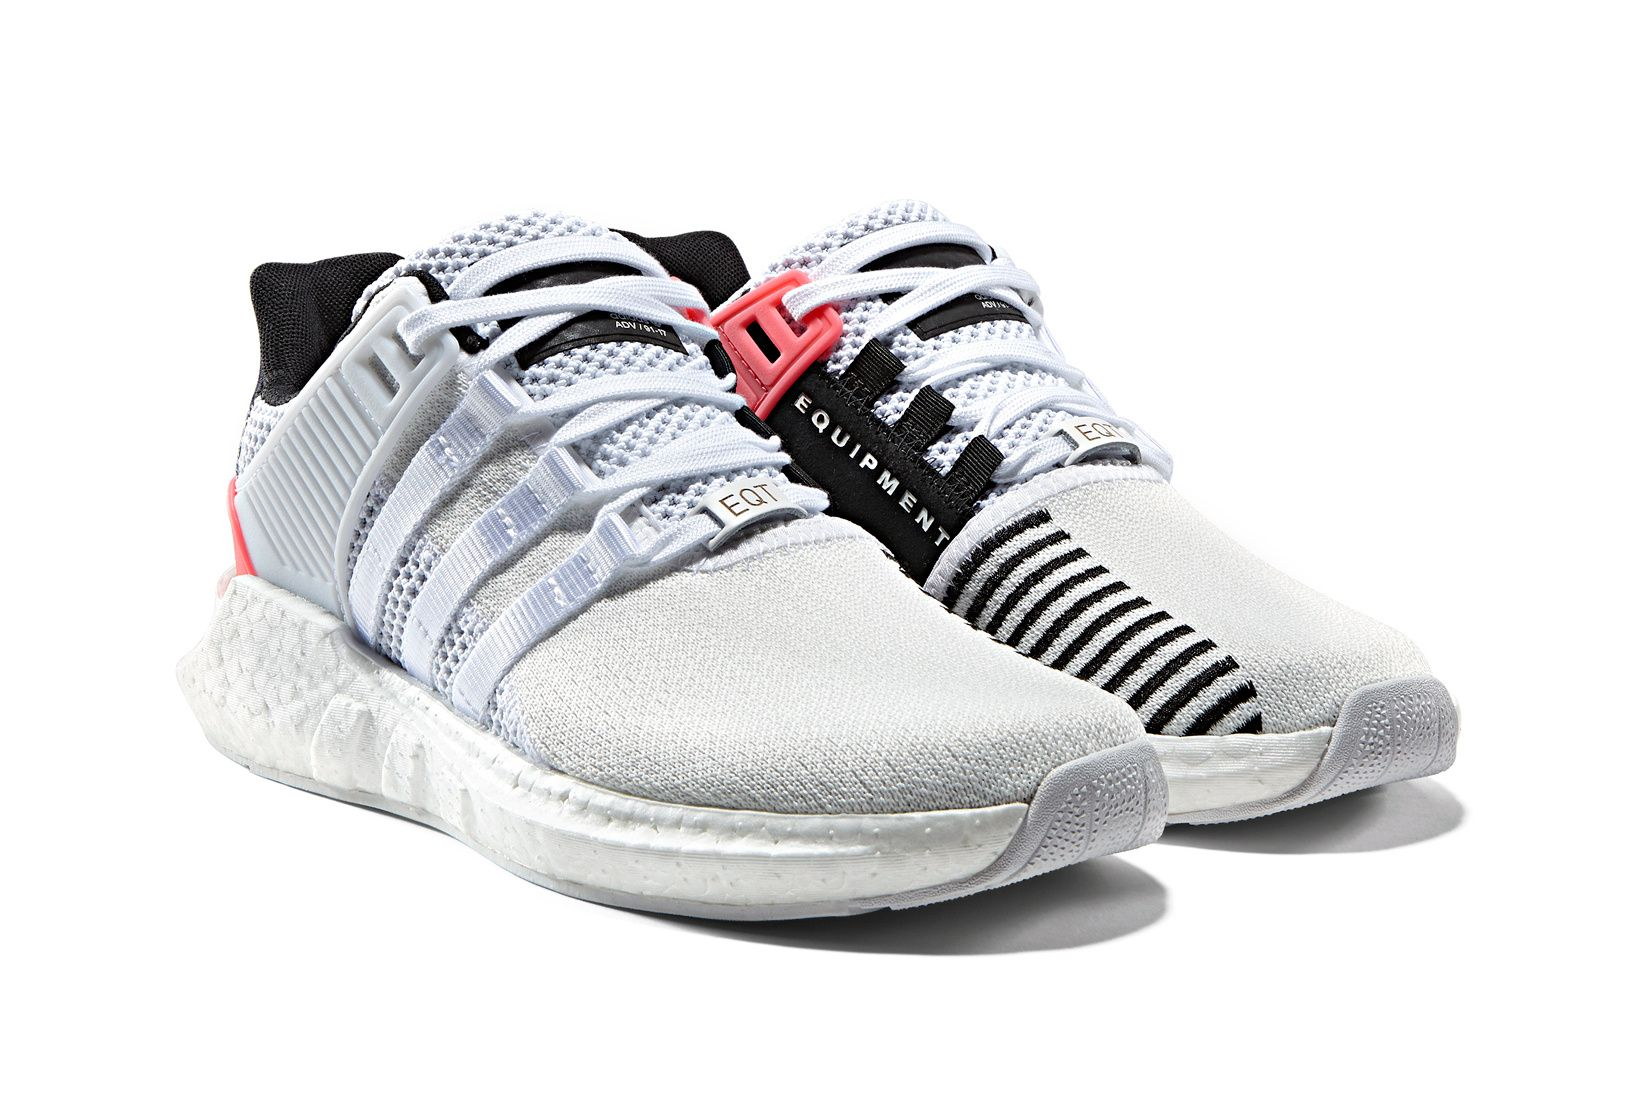 50fb86222a2f EQT Support 93 17 in White Turbo Red. Expected release March 23 ...